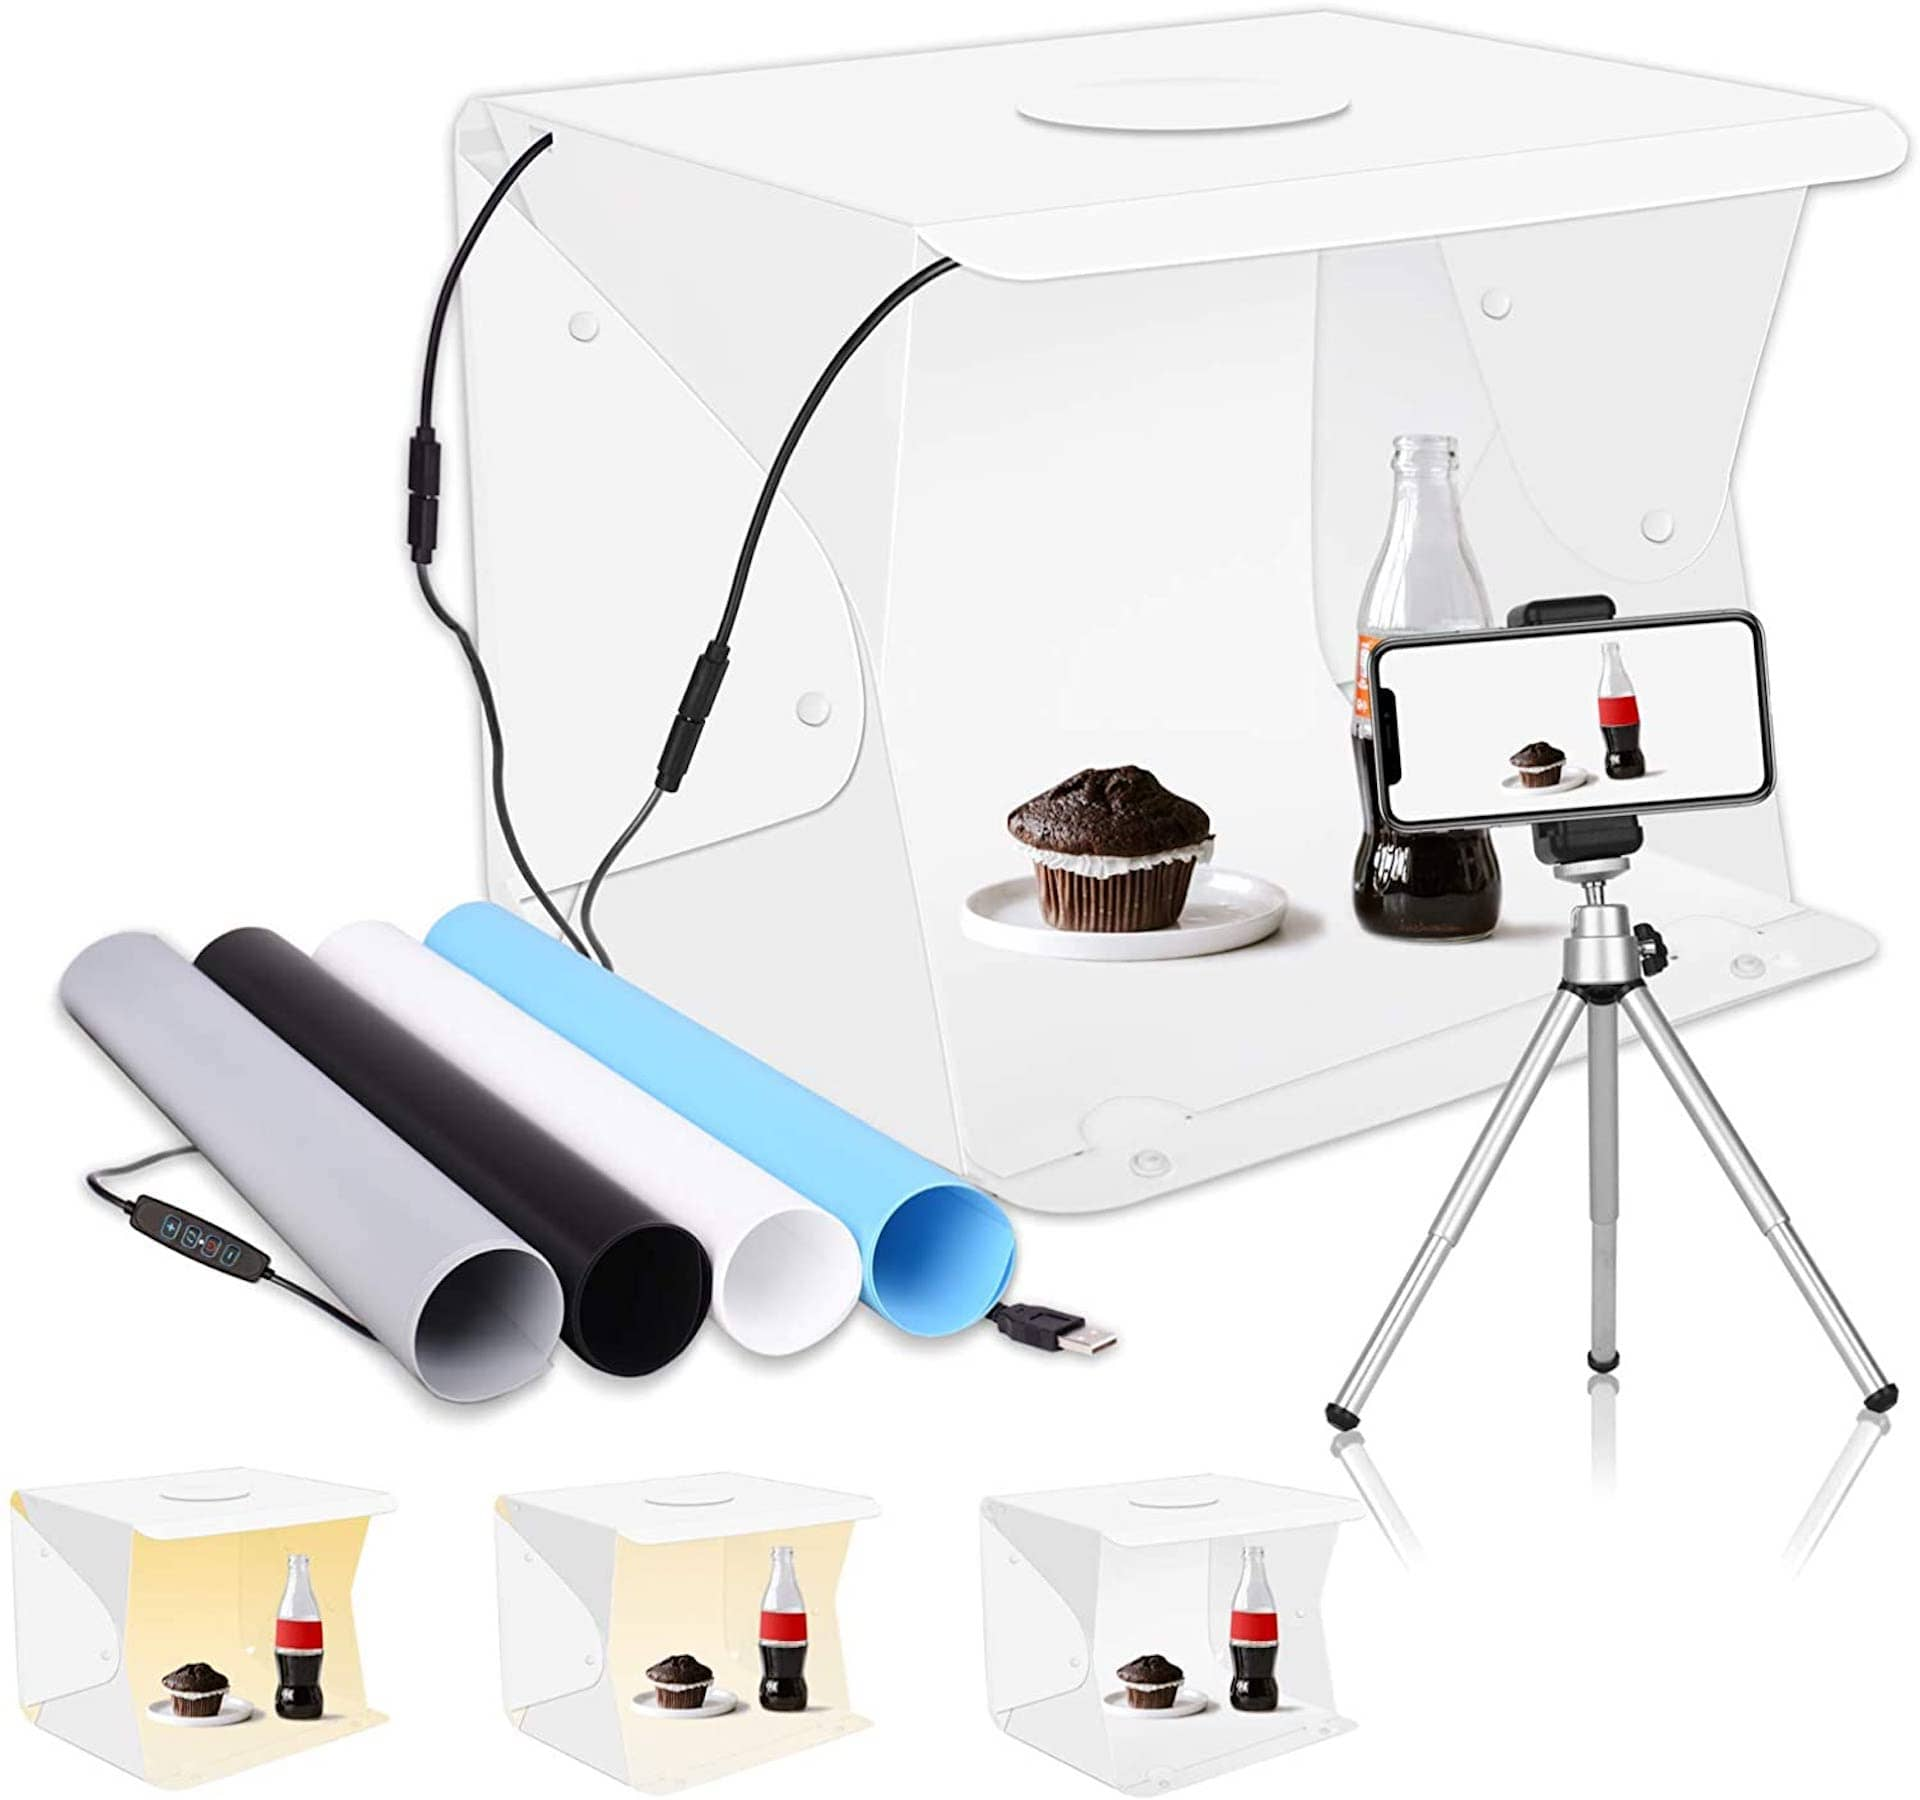 Best Photo Gifts for Photographers - Ideas Photographer Lovers - Lightbox Home Studio